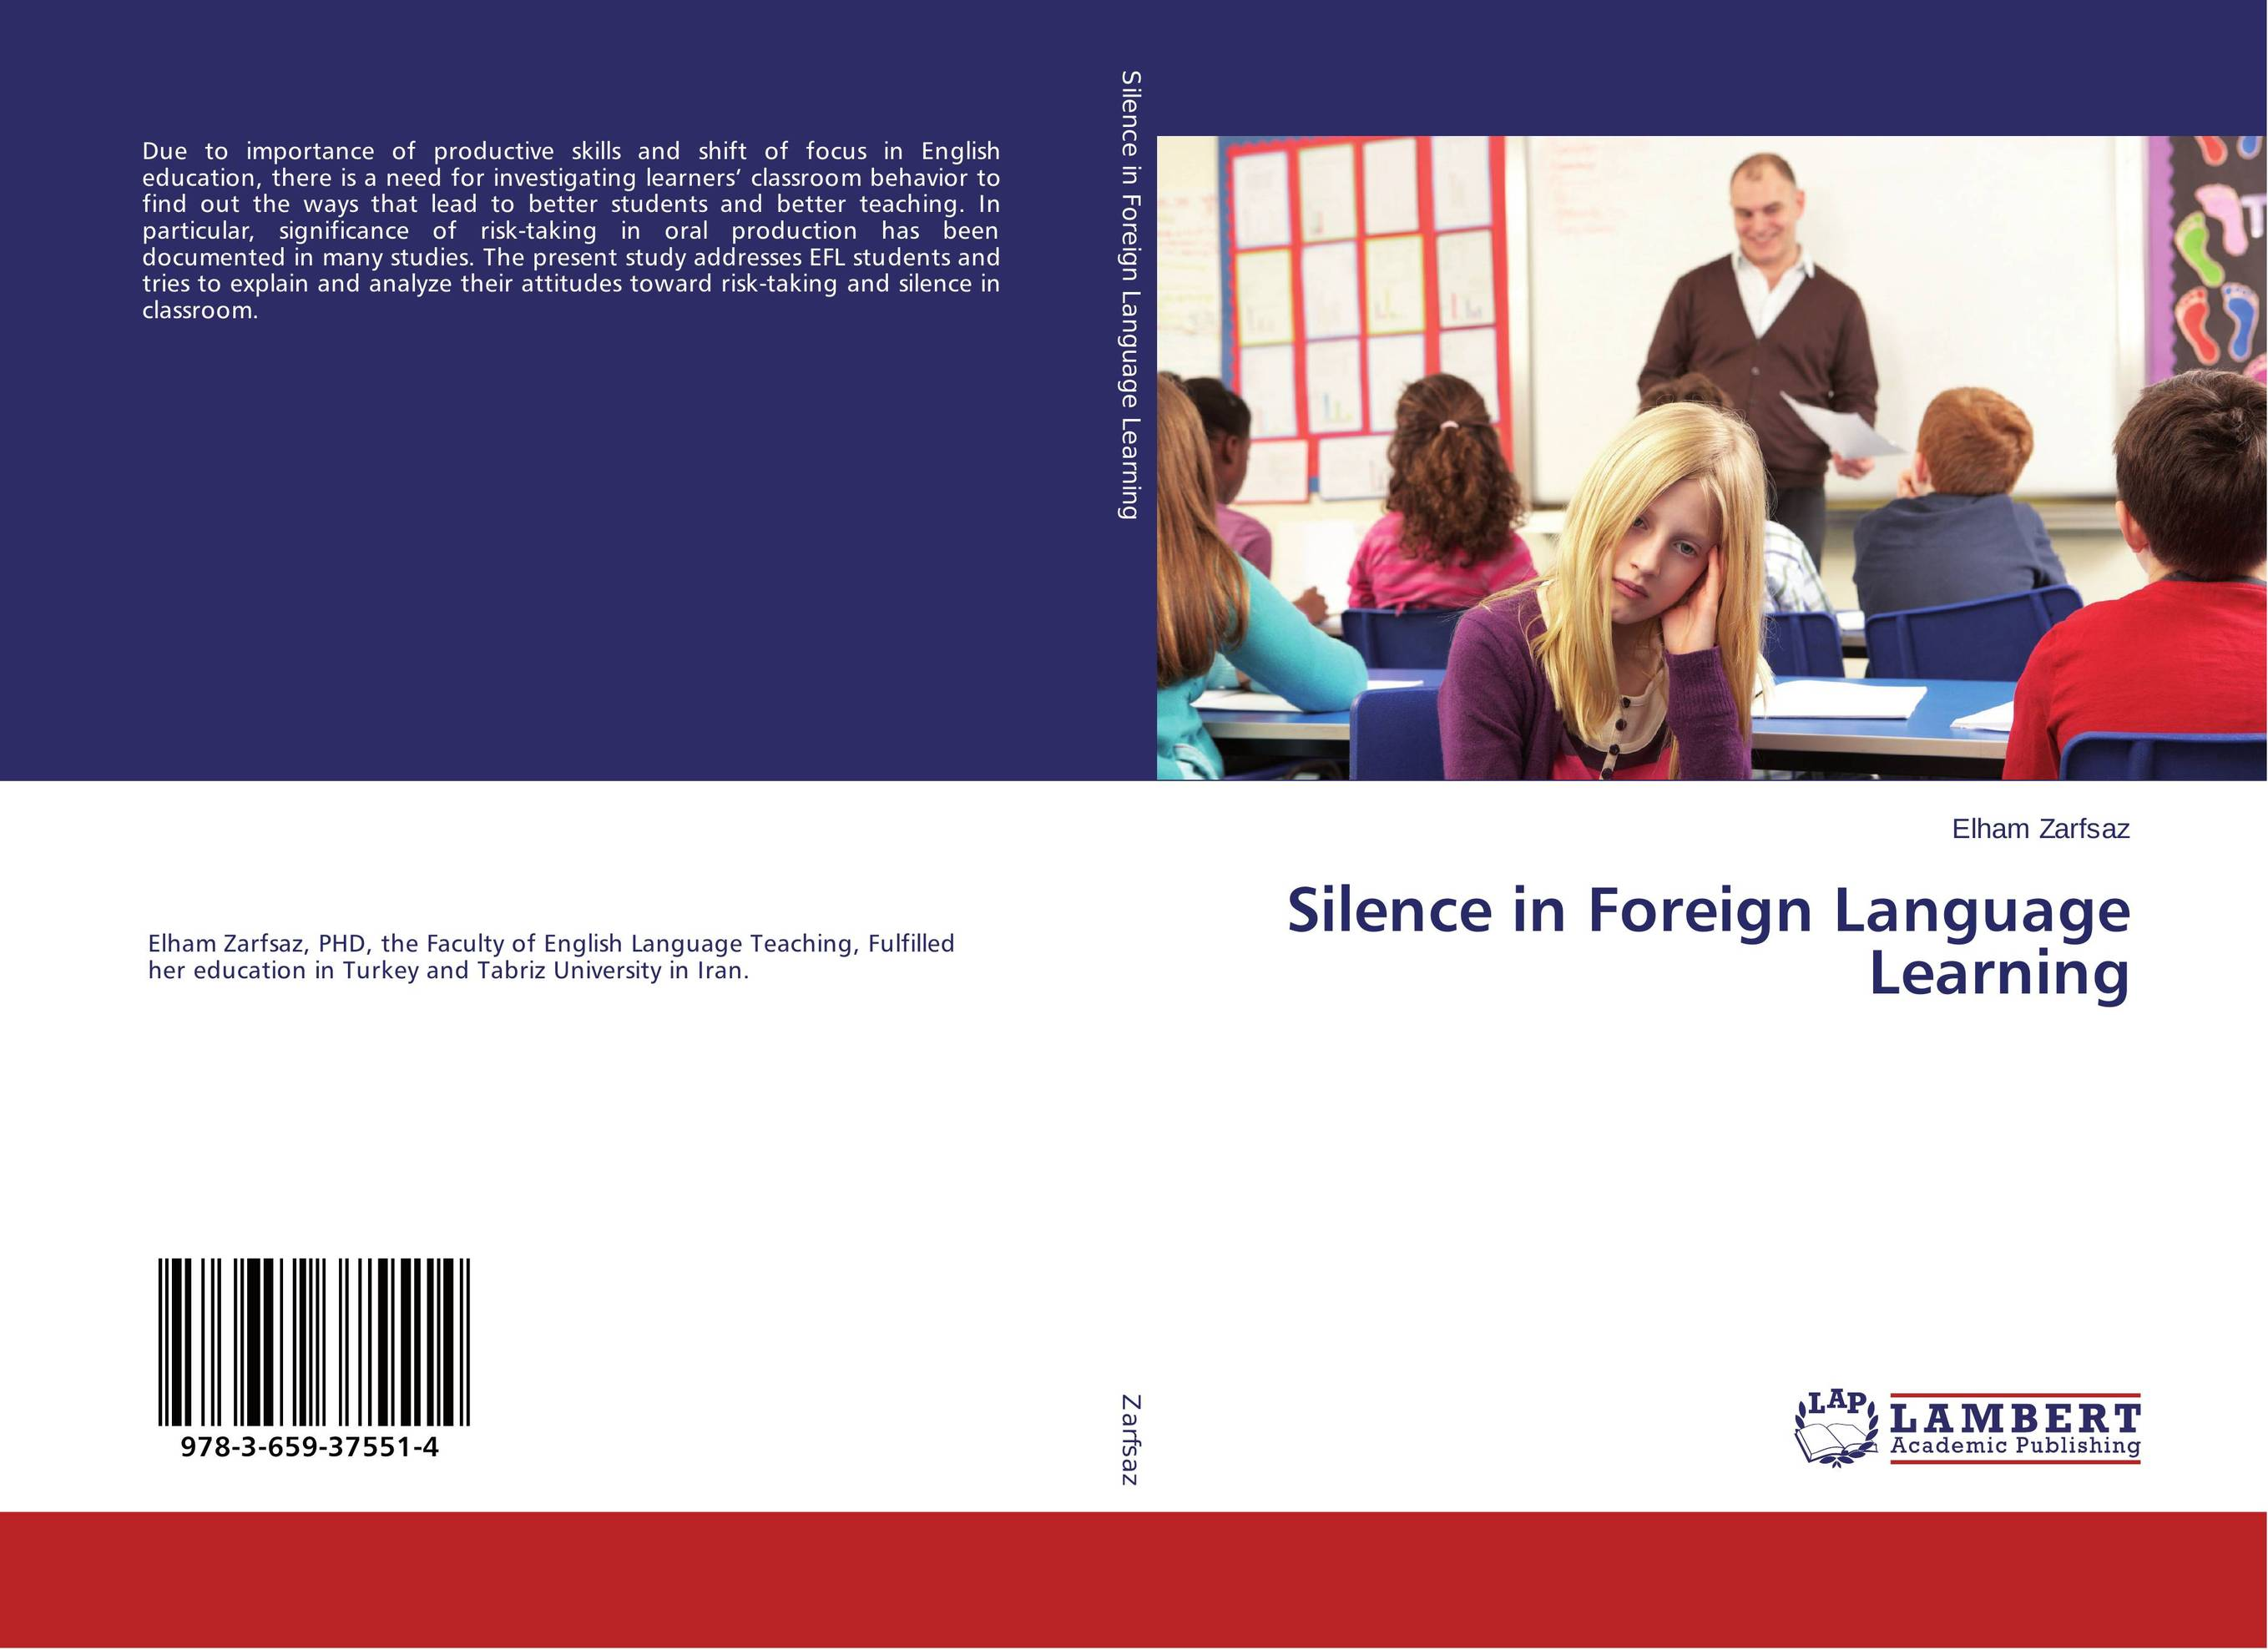 Silence in Foreign Language Learning